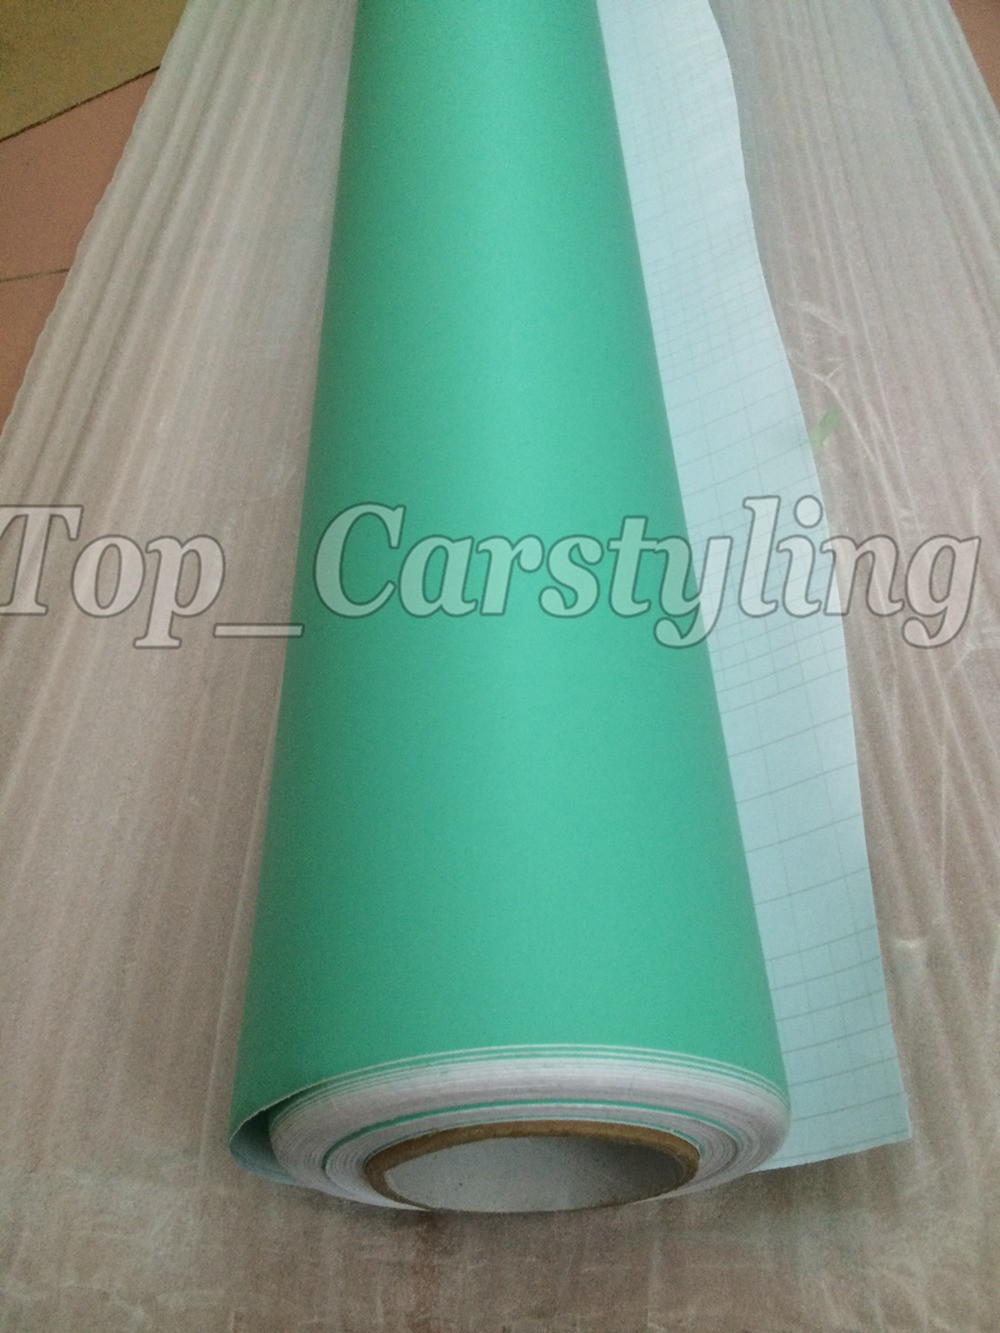 Matte tiffany blue mint green vinyl car wrapping film 3m satin white car wrap Film Foile (4)